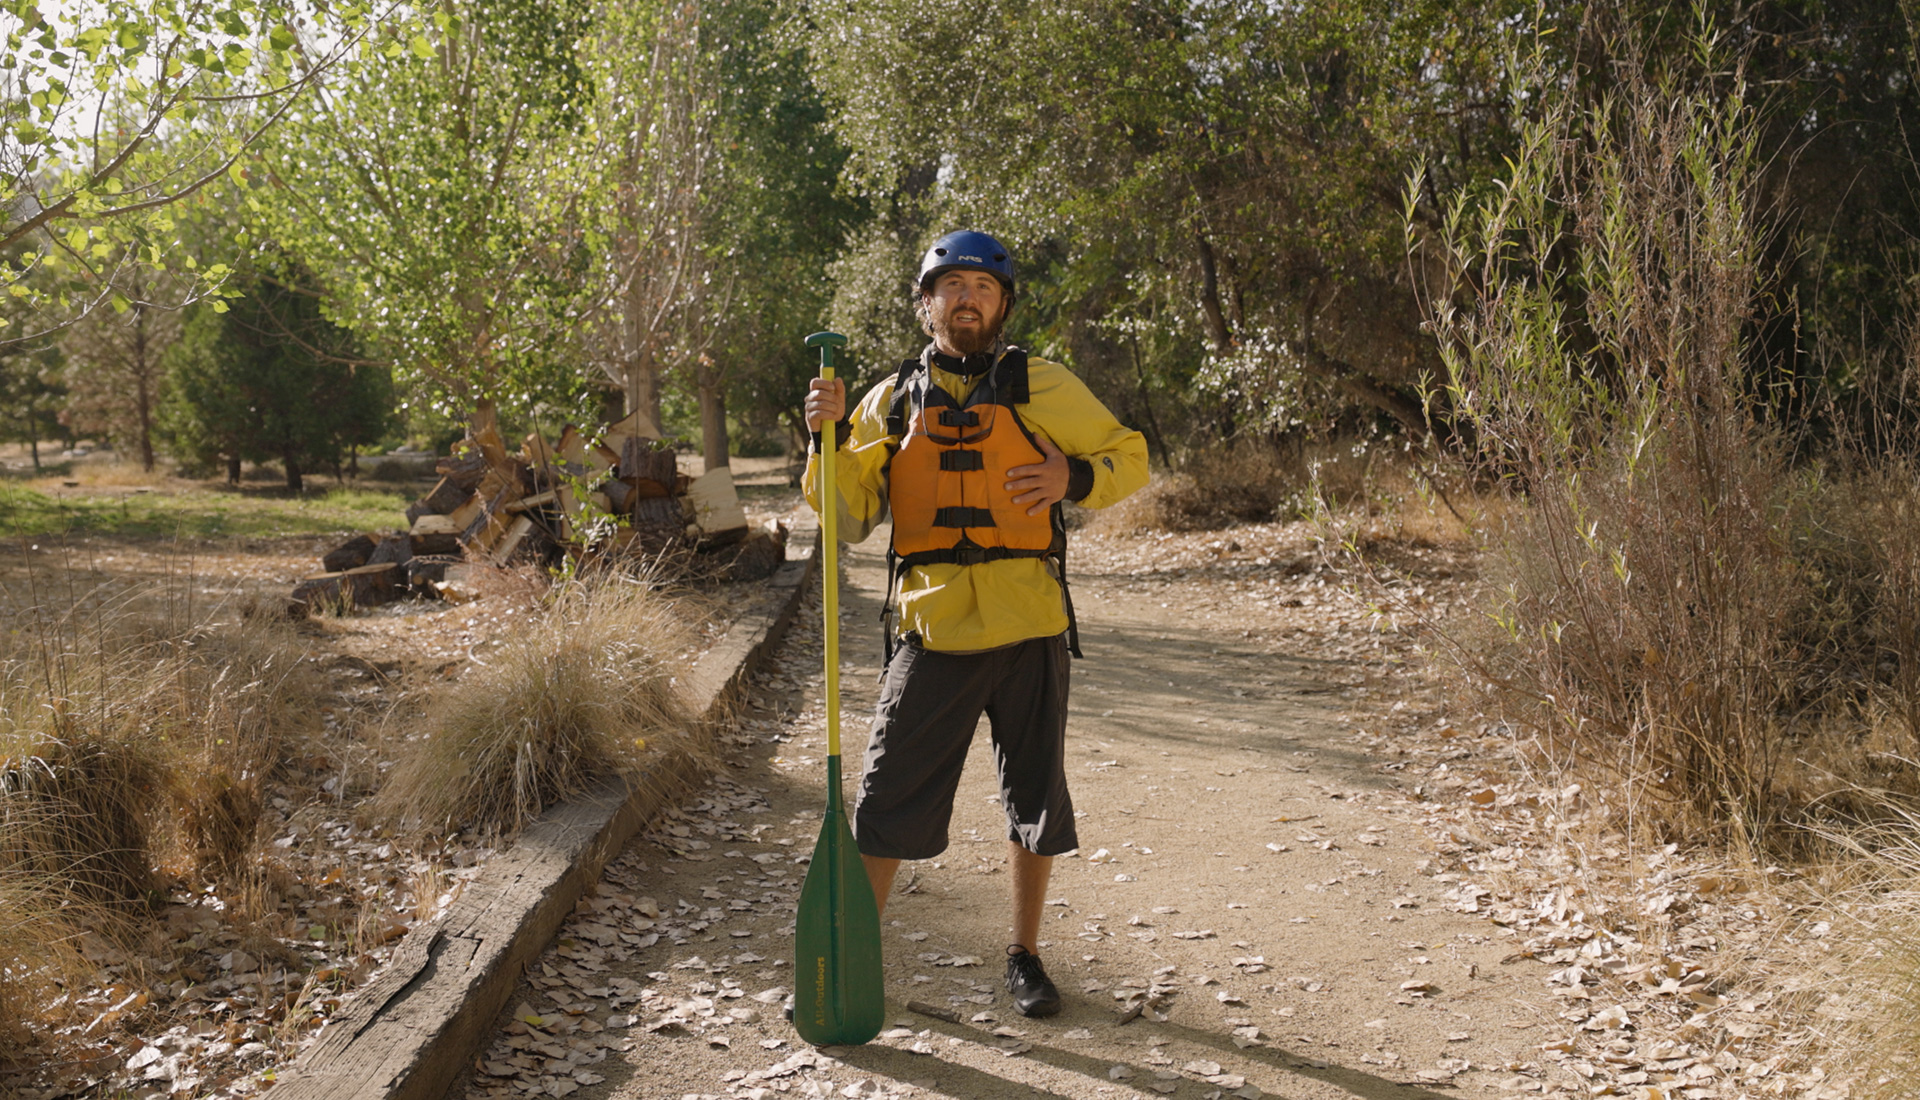 What to wear for fall rafting in California